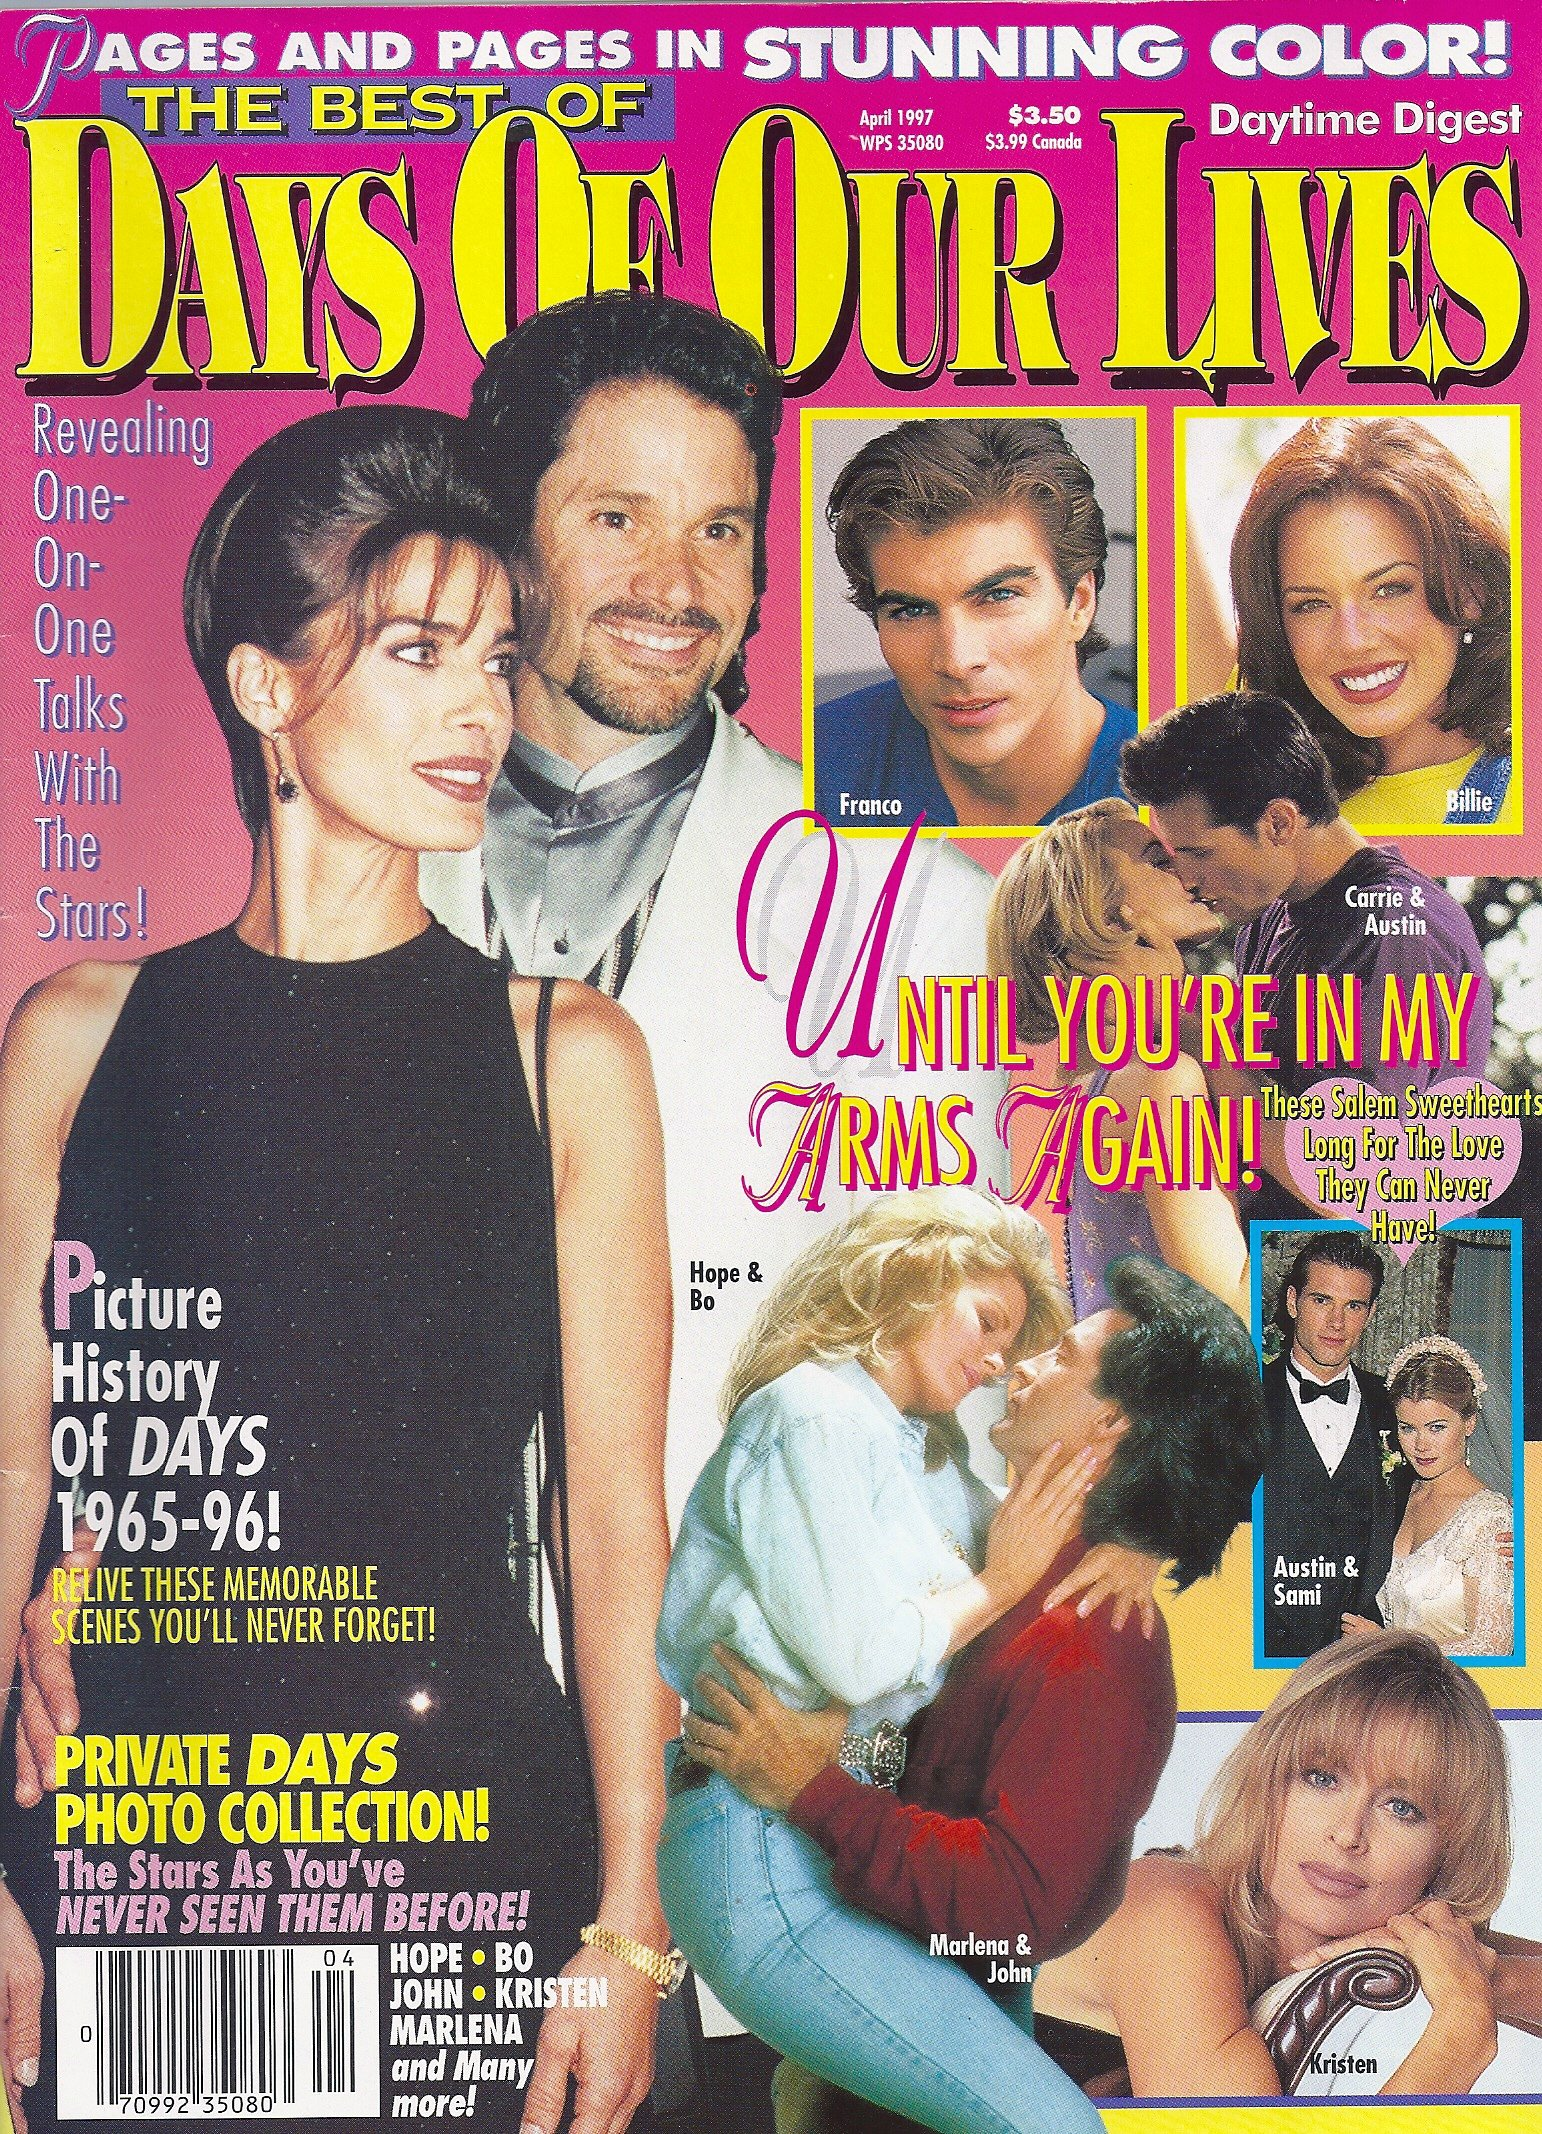 DAYTIME DIGEST PRESENTS THE BEST OF DAYS OF OUR LIVES [April, 1997, Soap Opera, Sterling/Macfadden] Single Issue Magazine – 1997